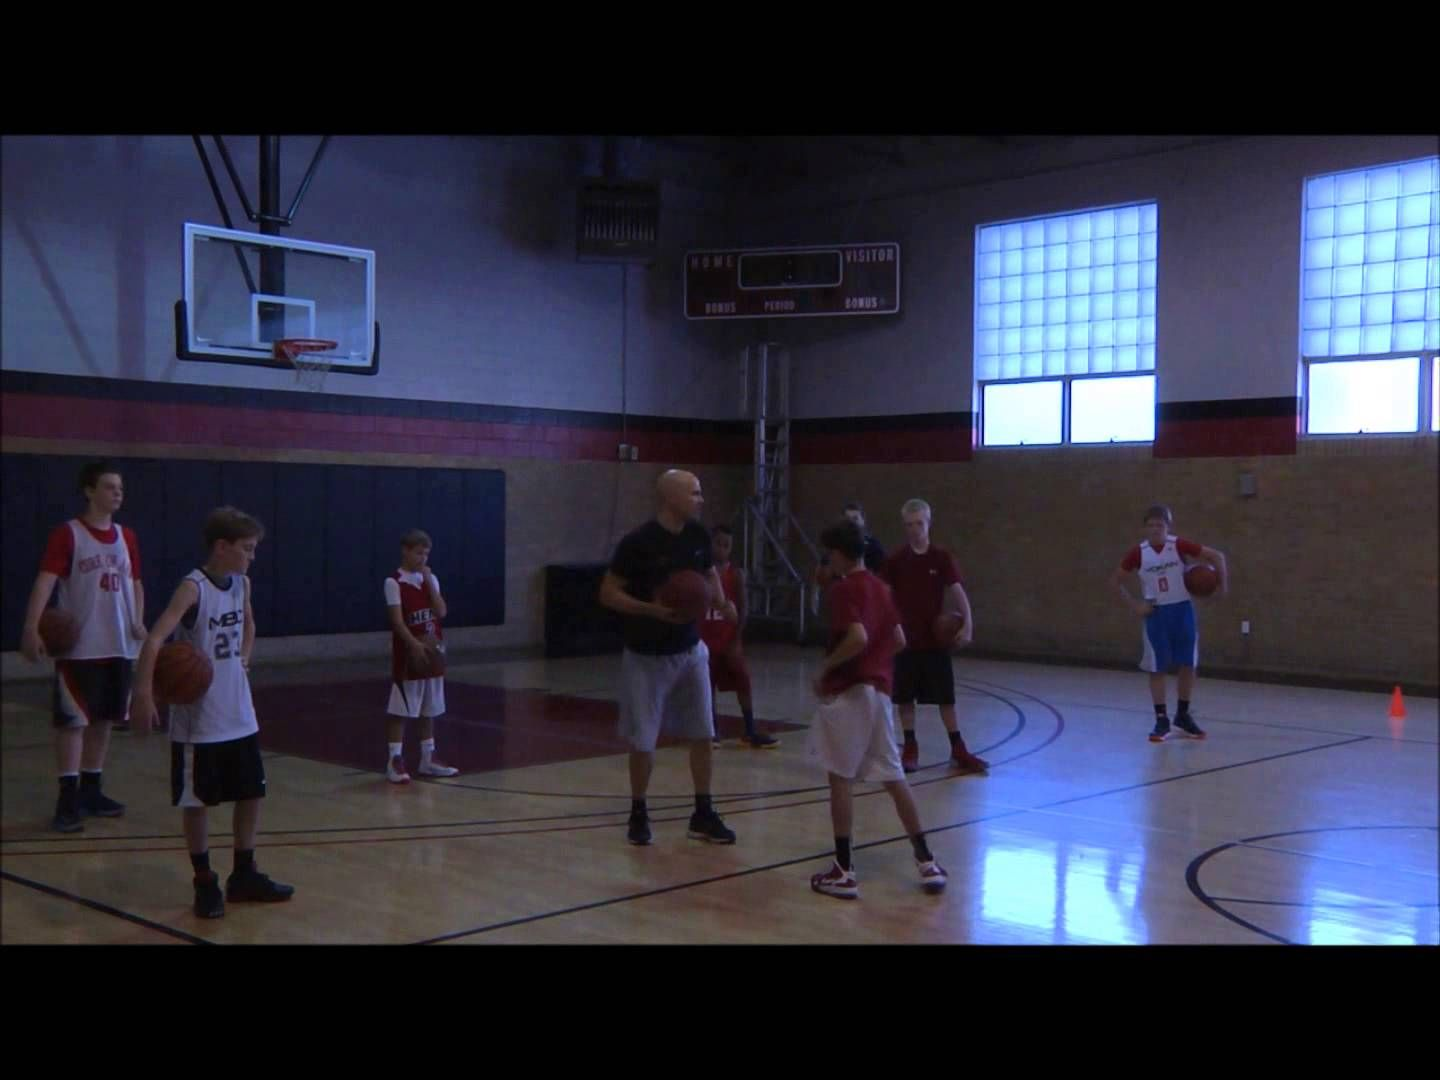 Ball security drills square up, rips, pivots Basketball